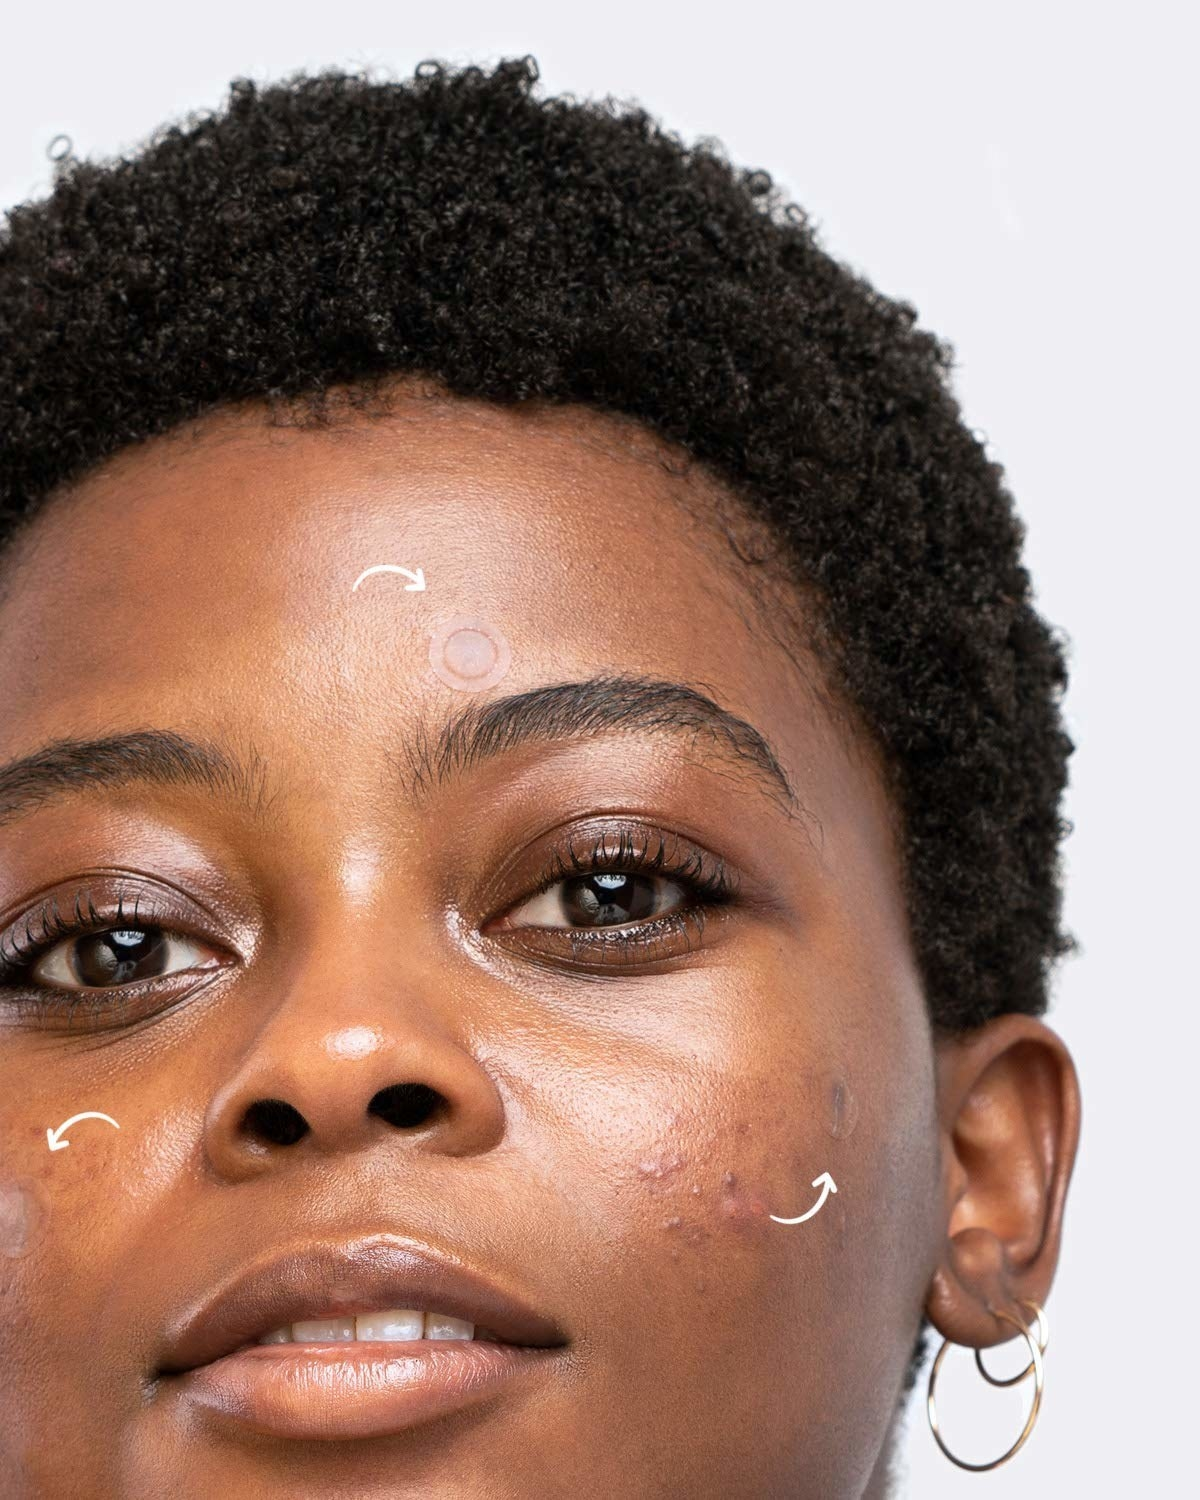 A person using the acne patches on their face.